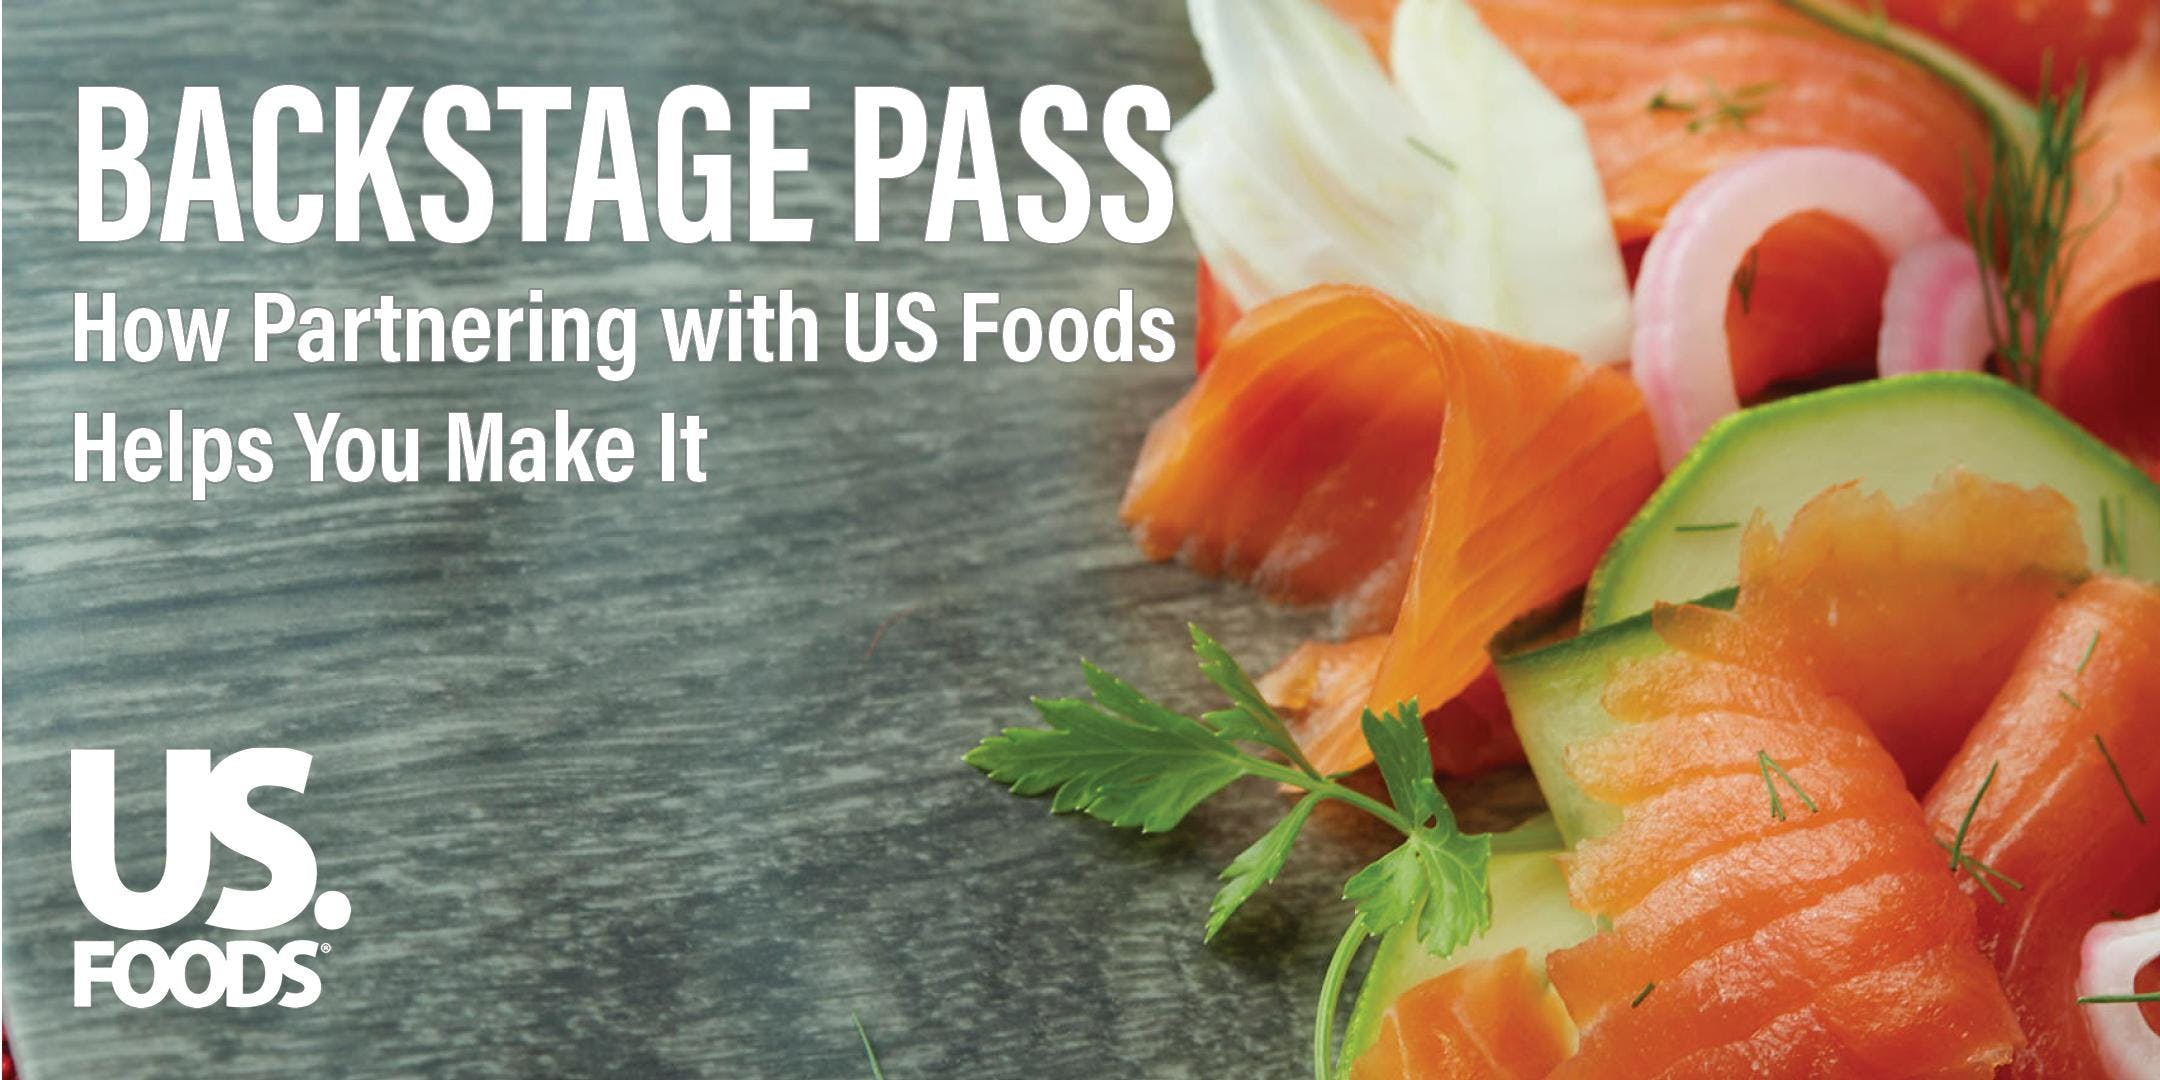 US Foods - Backstage Pass